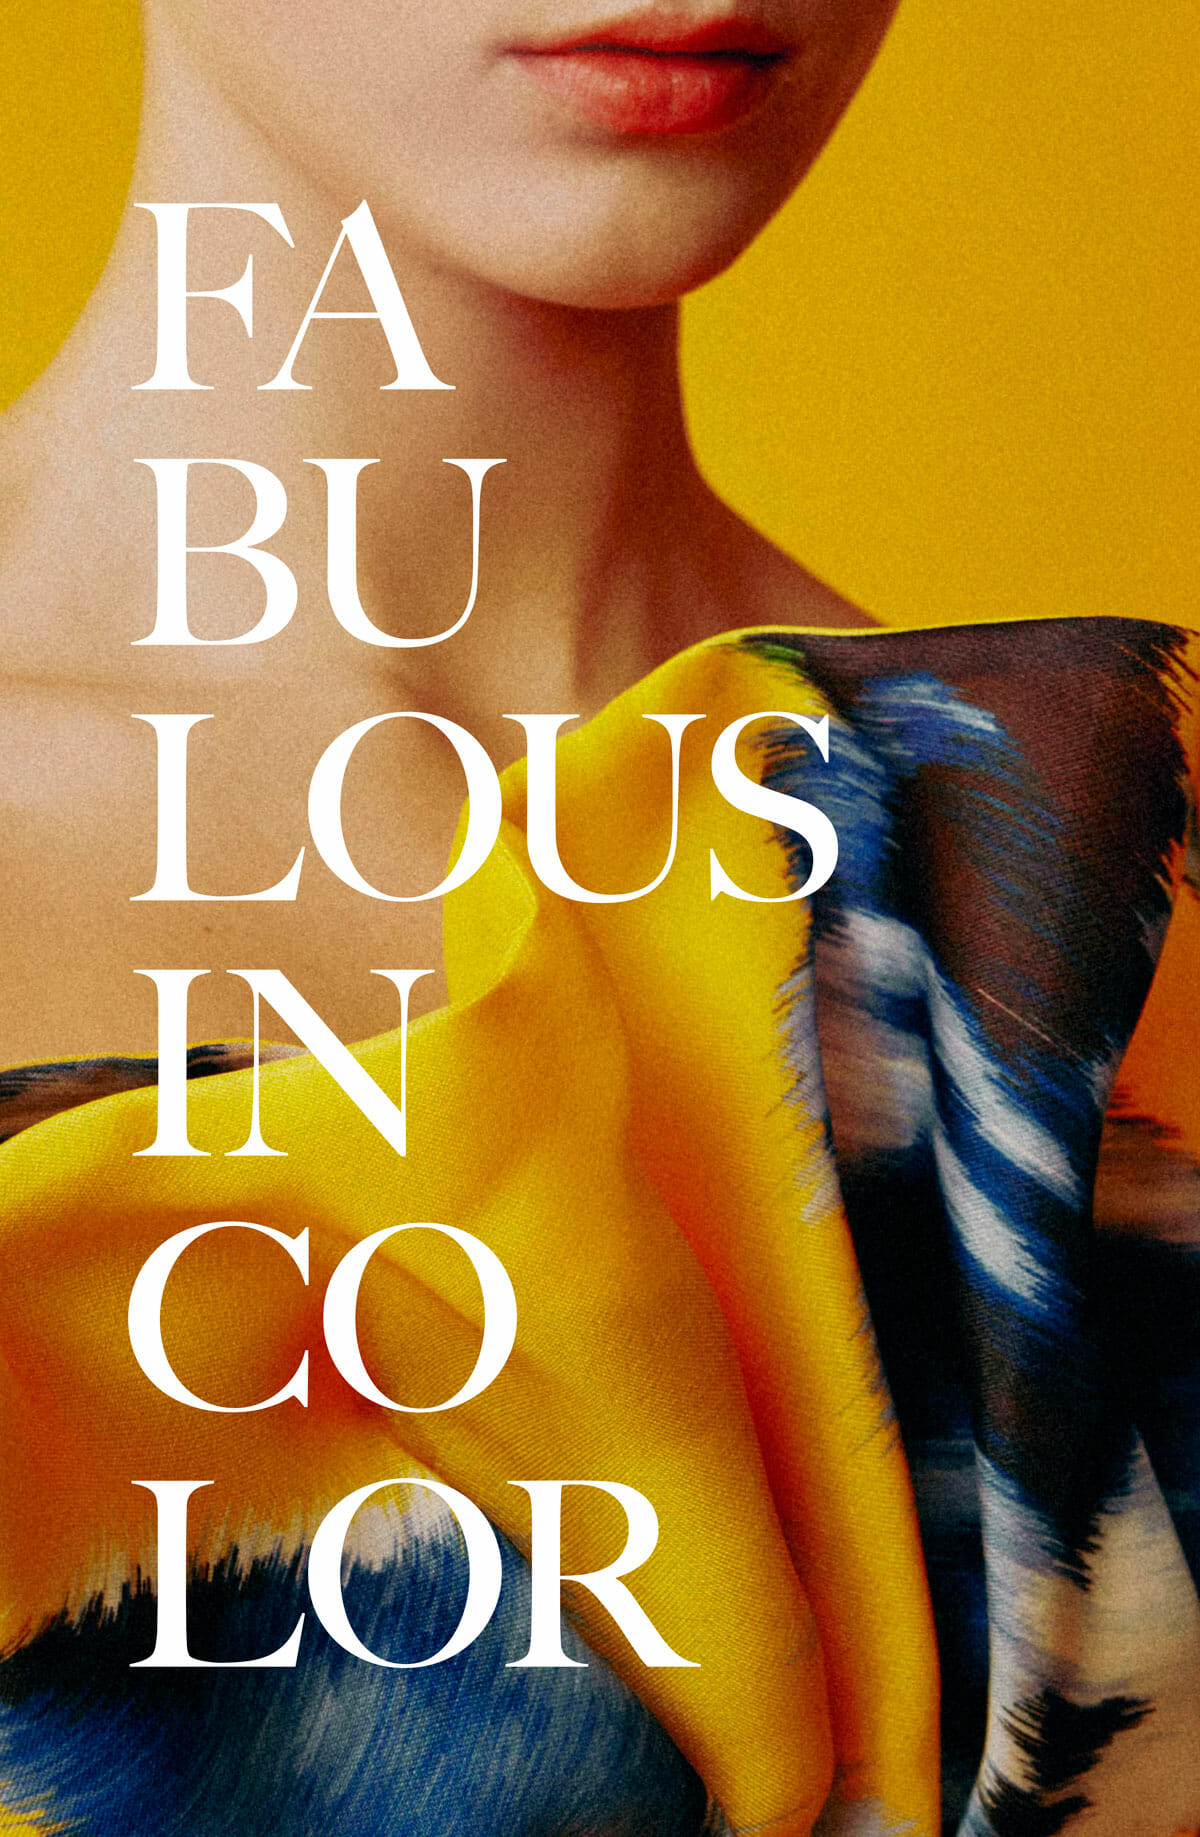 Fabulous in Color: Wes Gordon celebrates color with Quentin Jones, Pantone, and more